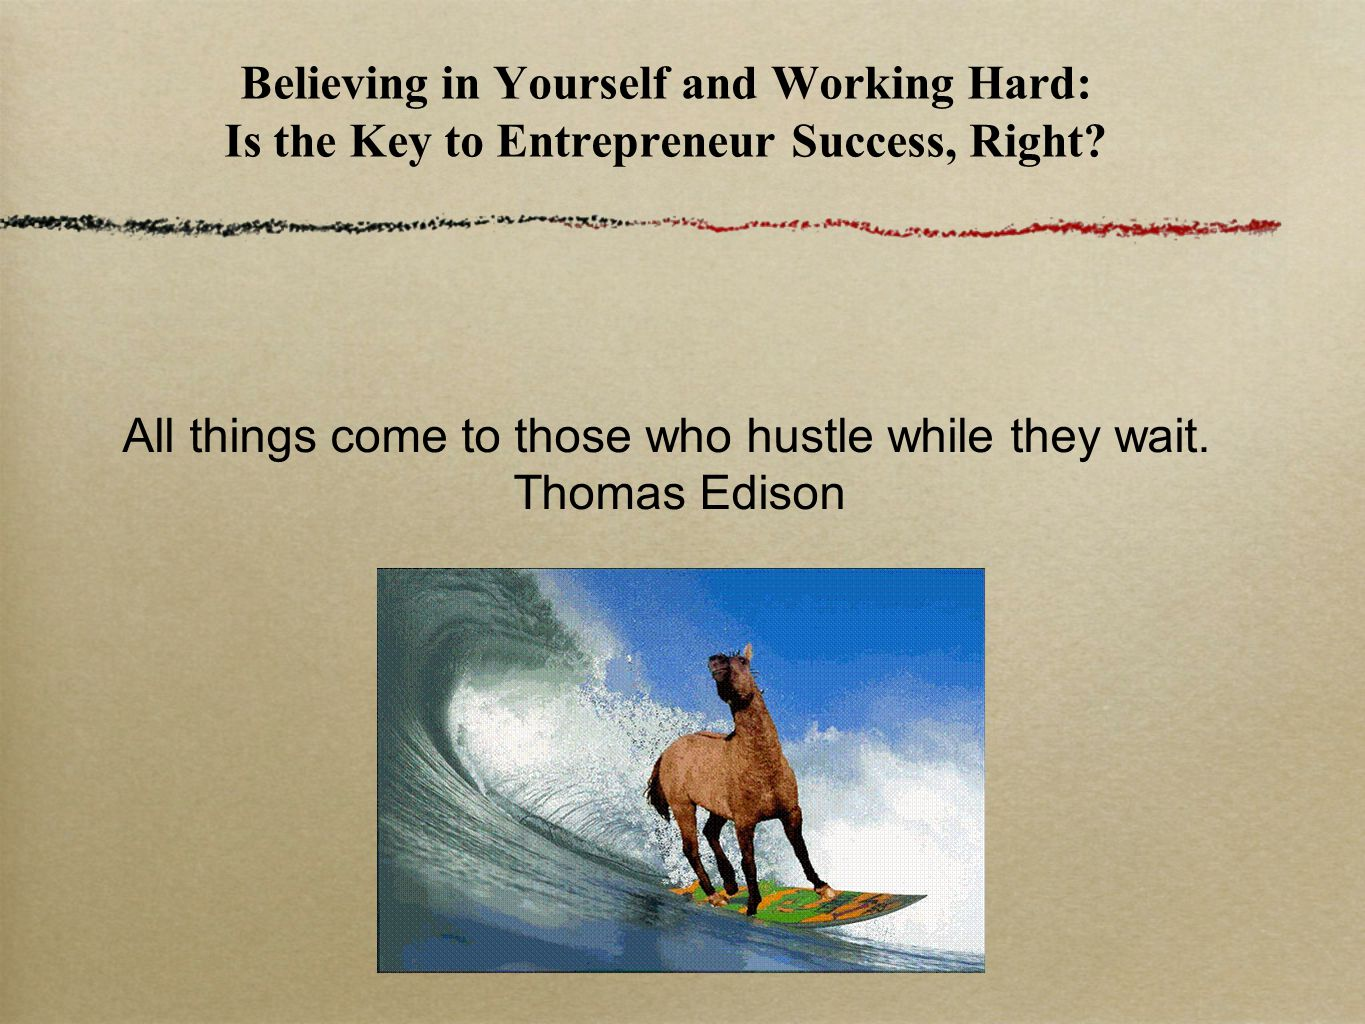 Believing in Yourself and Working Hard: Is the Key to Entrepreneur Success, Right.